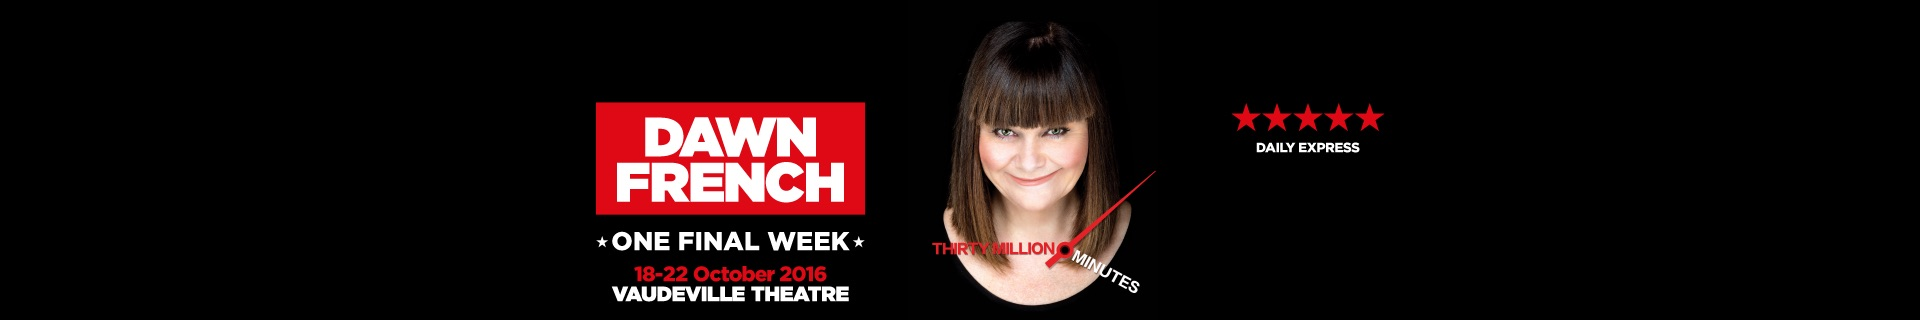 Dawn French: 30 Million Minutes banner image